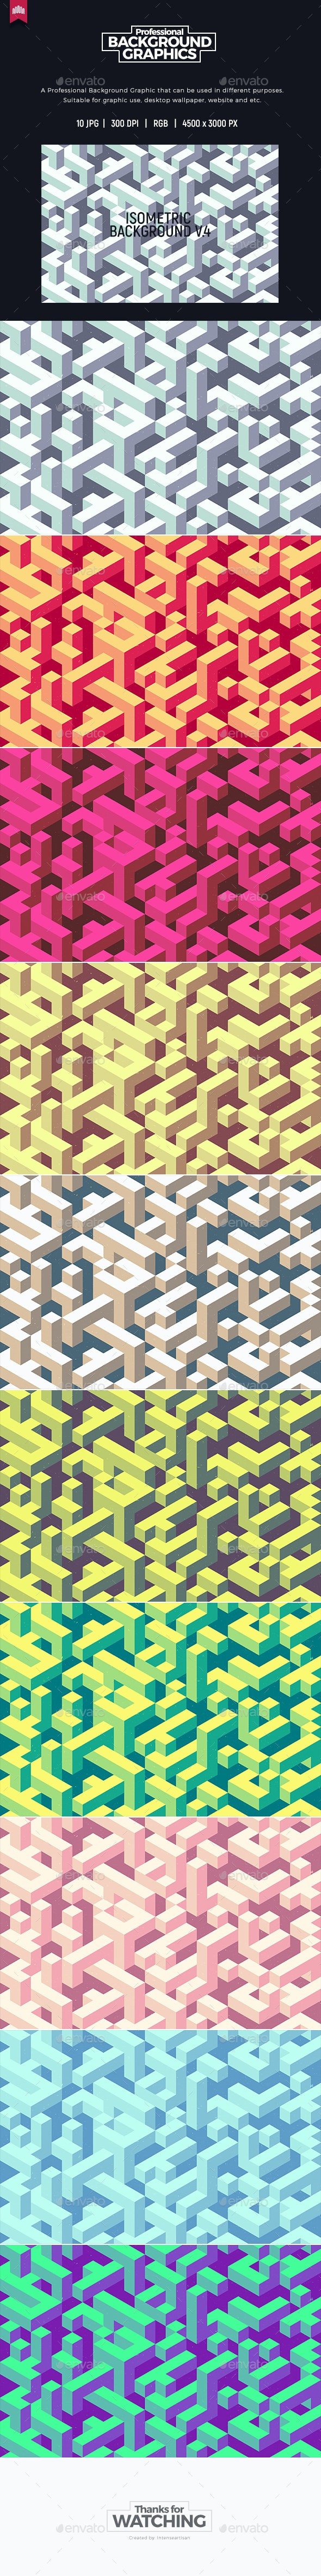 Isometric Background V.4 - Abstract Backgrounds